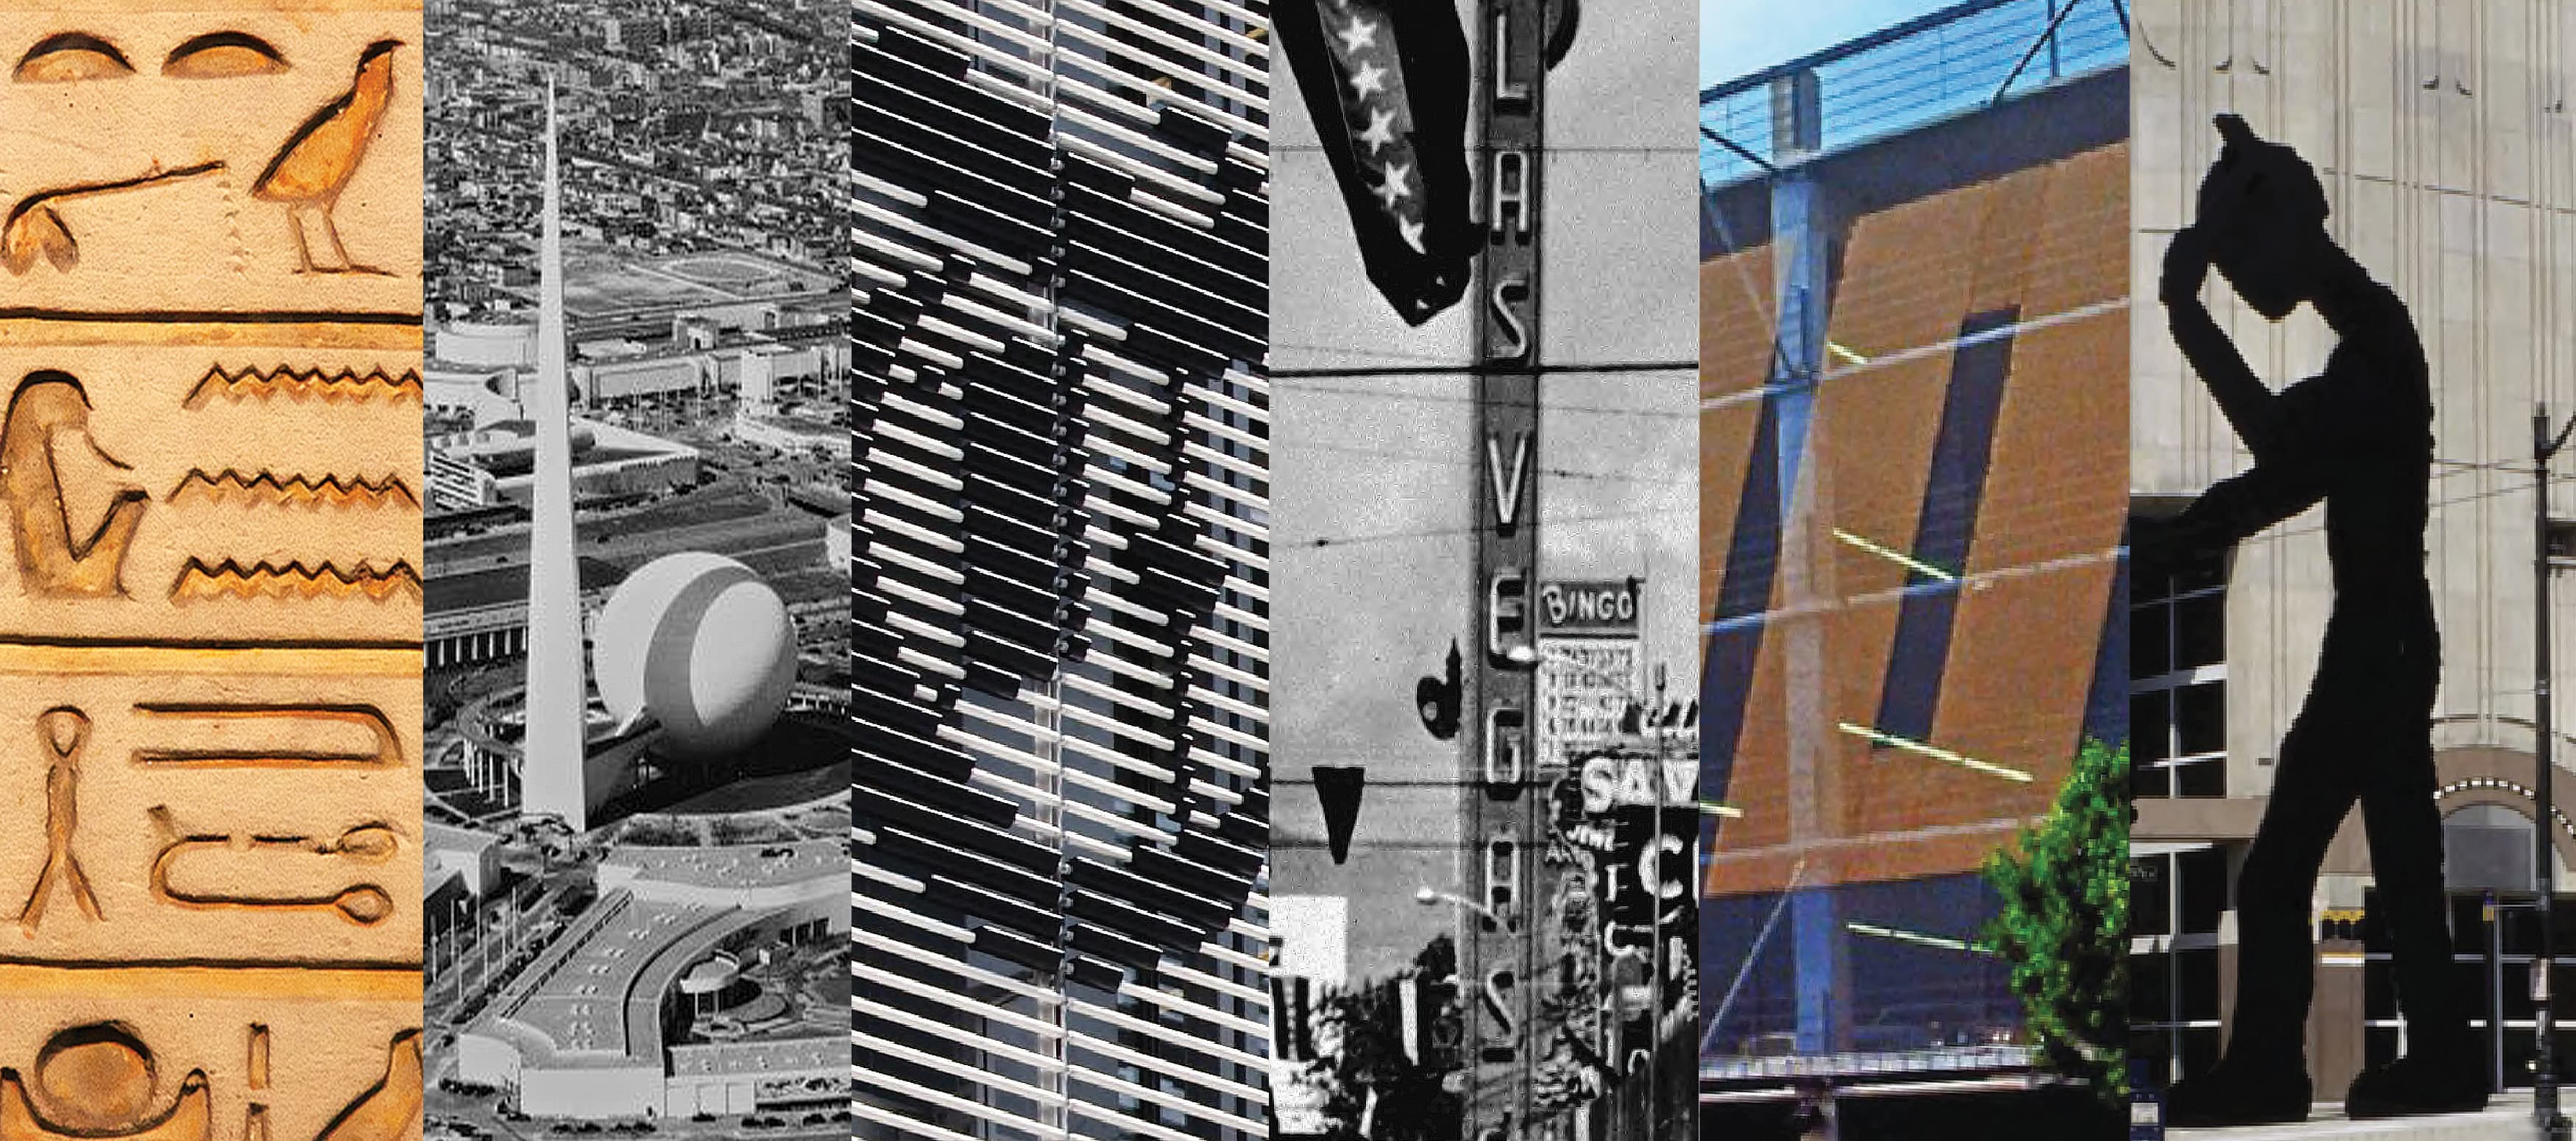 Architectural Graphic Design from Various Historical Moments.